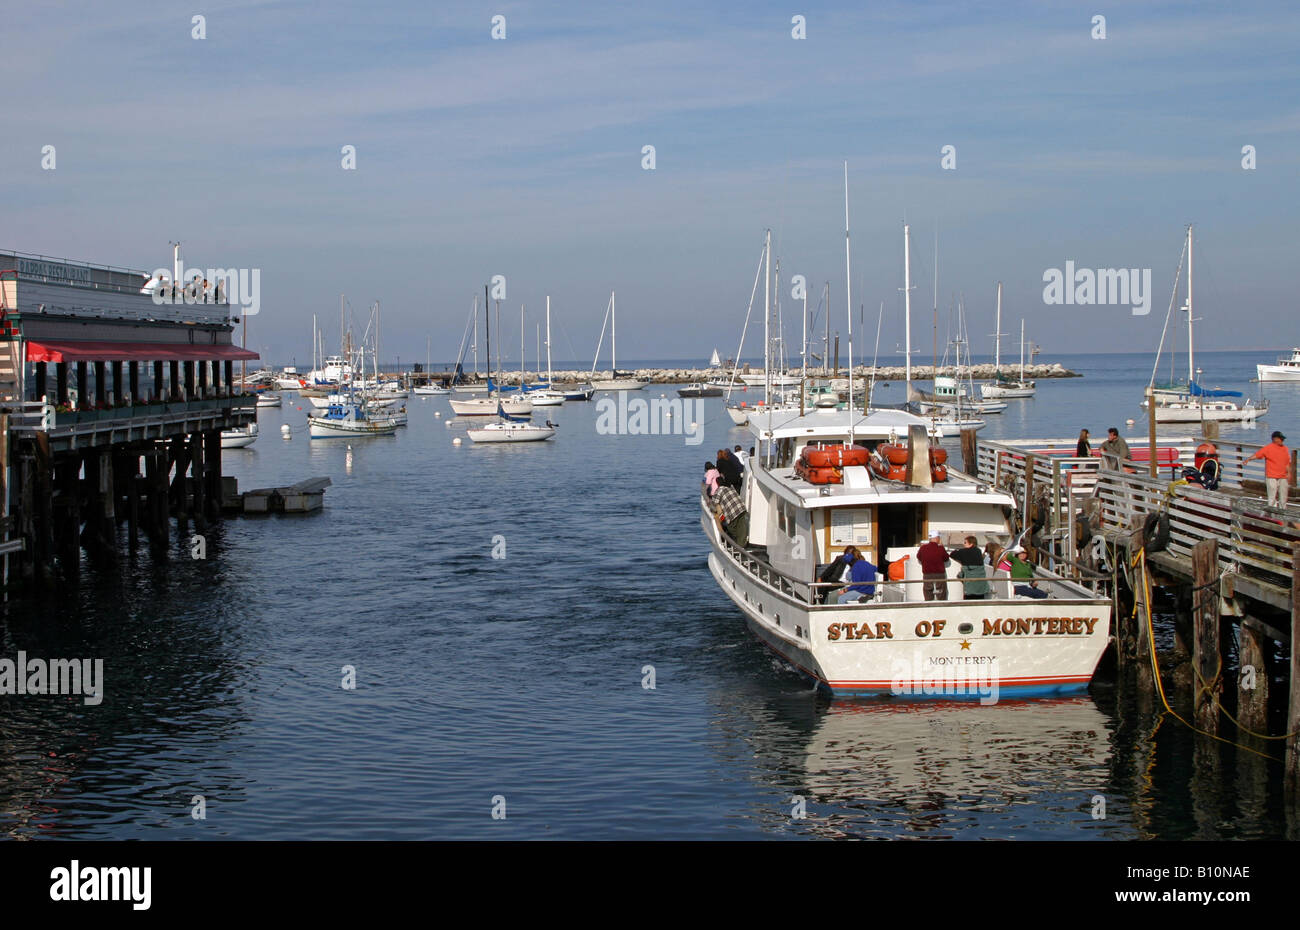 Star of Monterey Whale Watching Boat - Stock Image